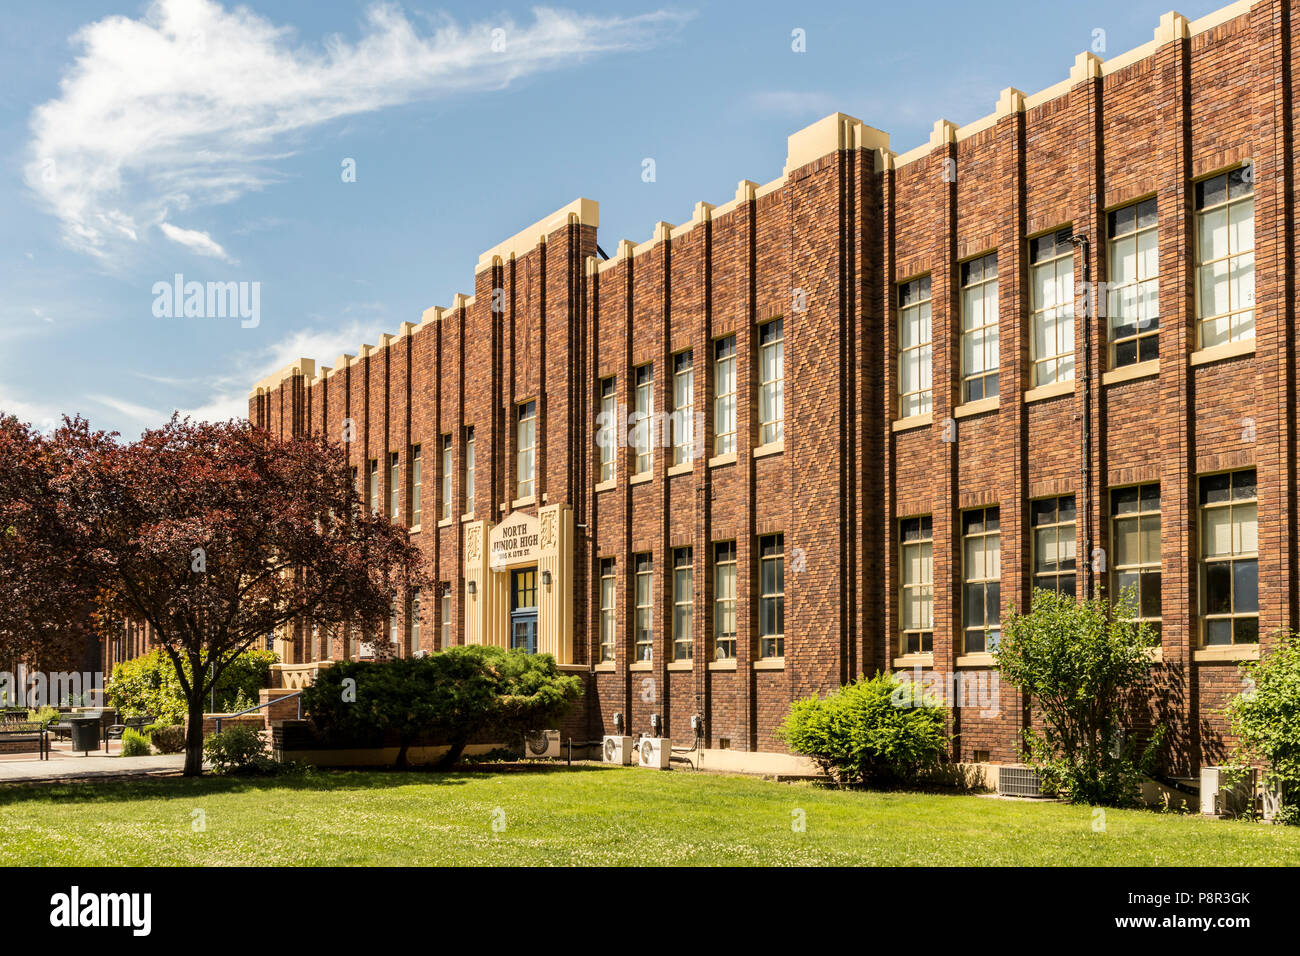 Boise, Idaho, USA - June 6, 2018: North Junior High School on N 13th St. in Downtown Boise, ID. - Stock Image